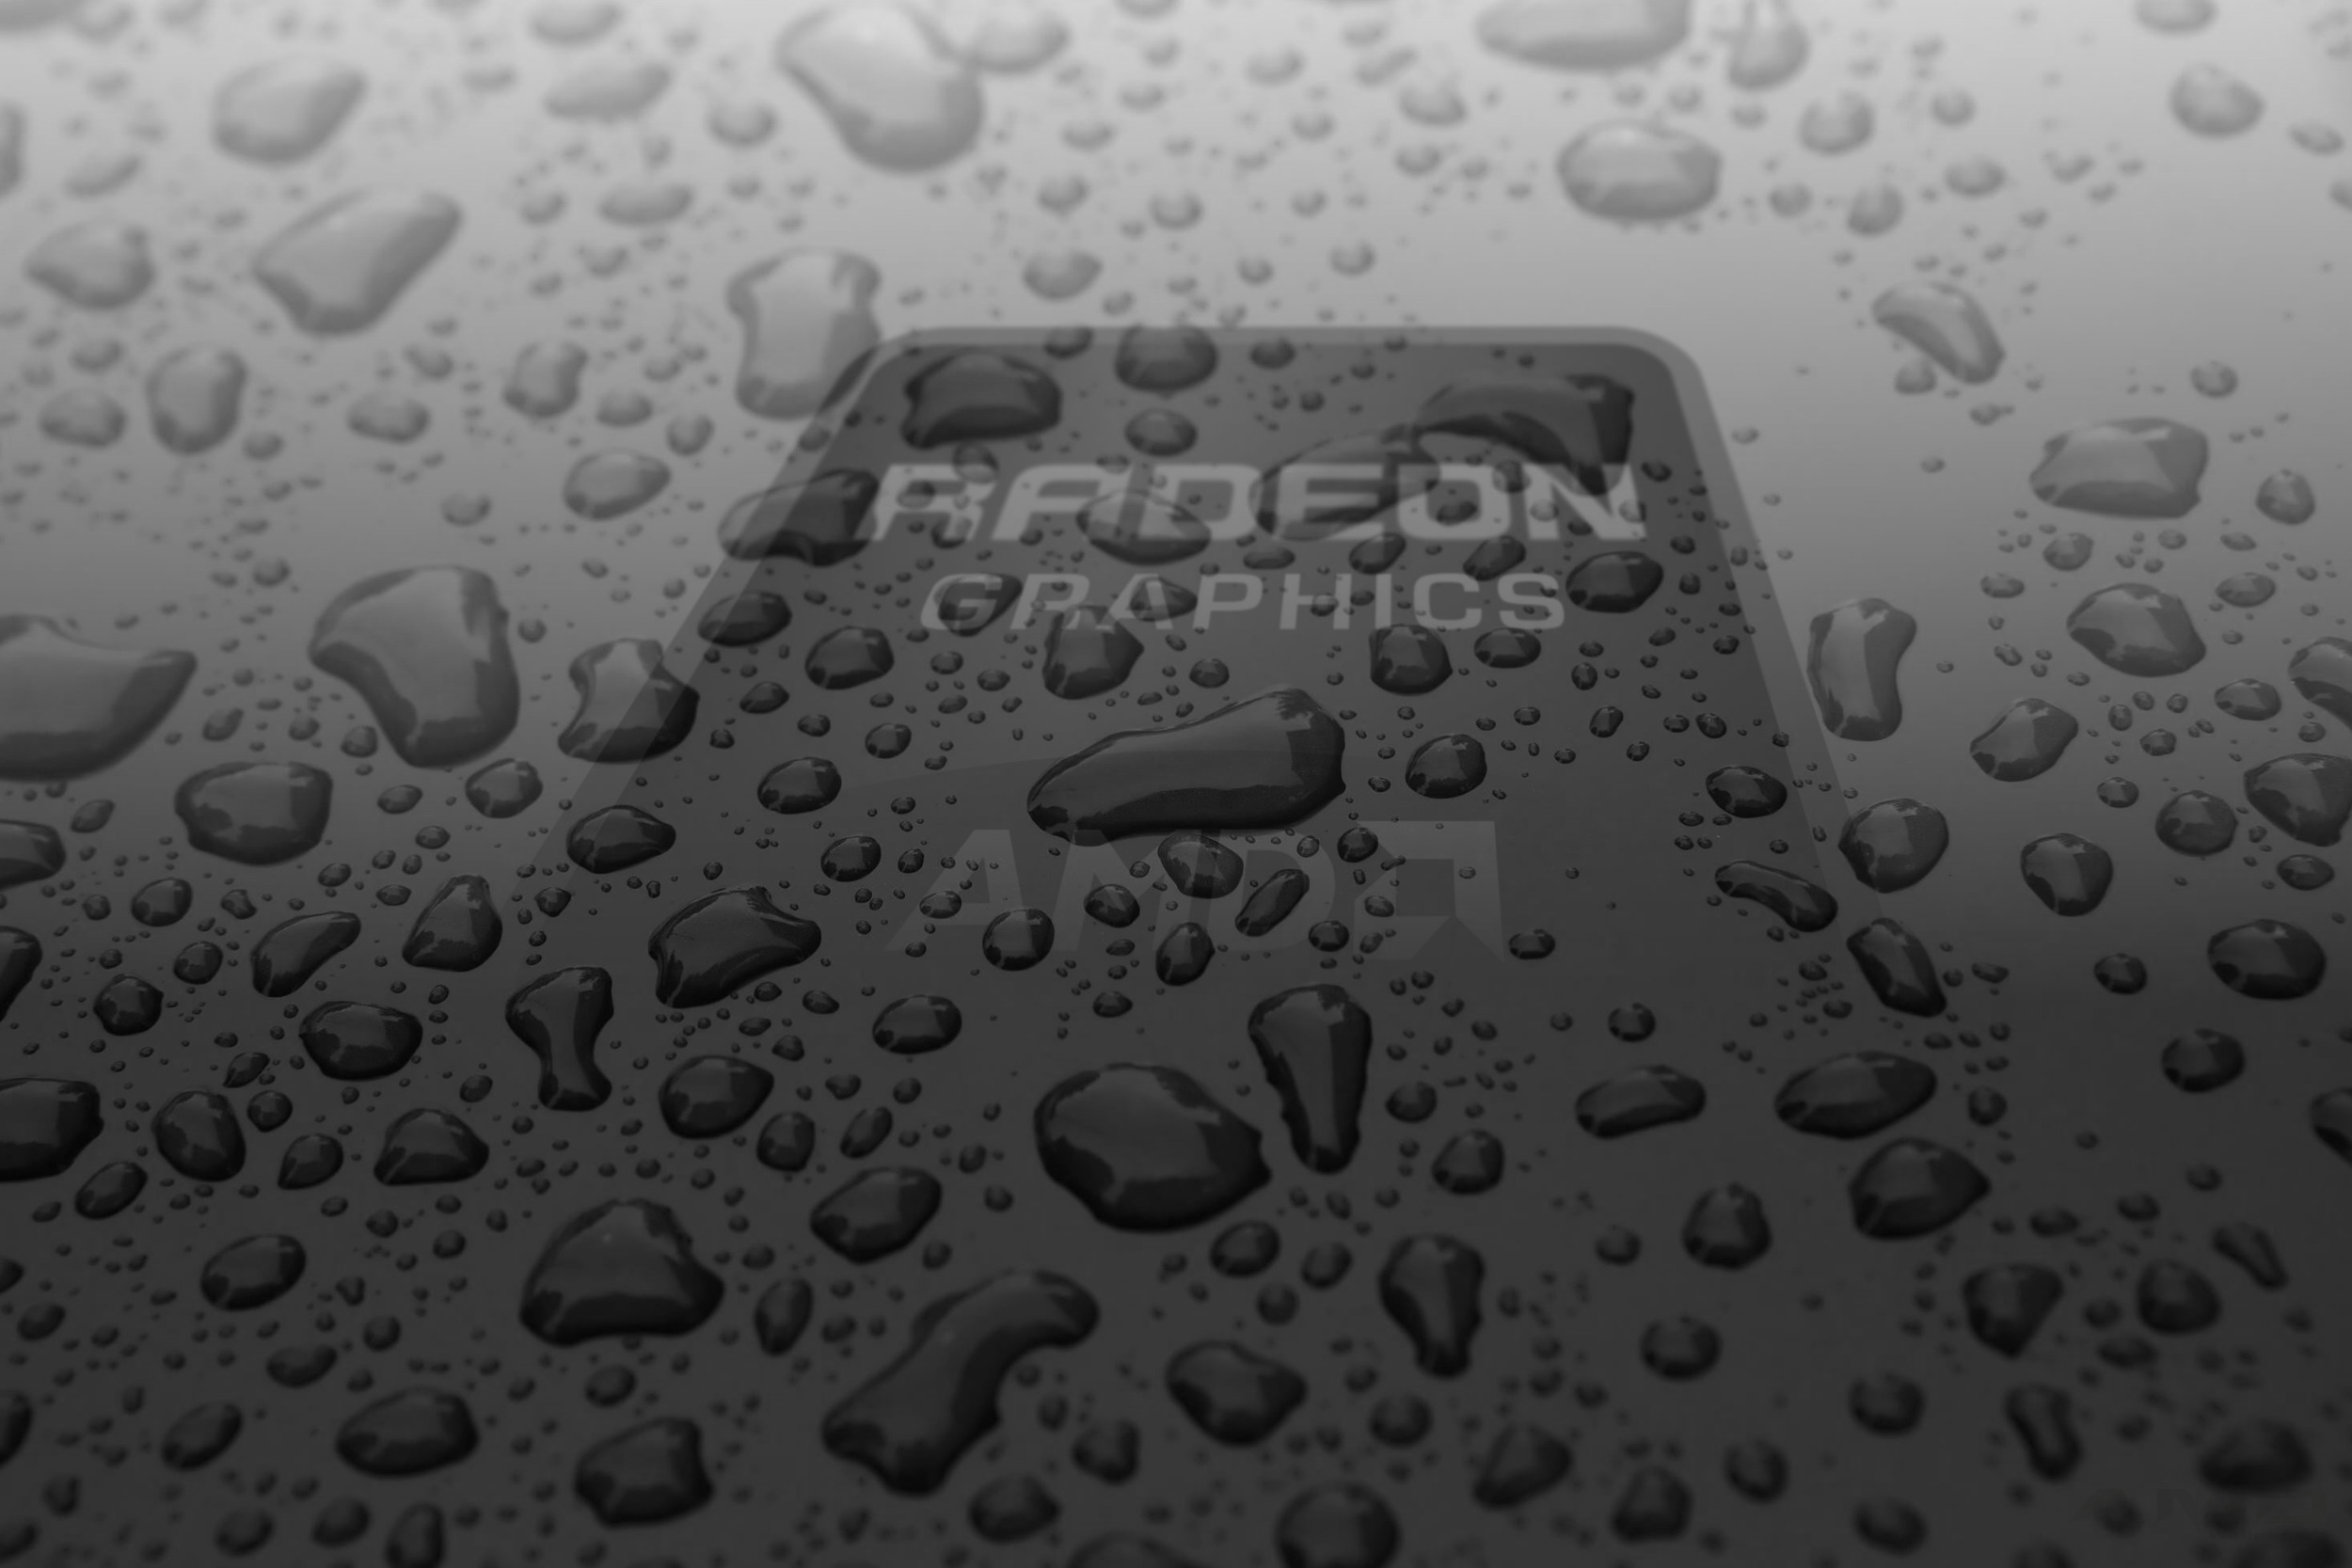 amd radeon wallpapers hd - photo #40